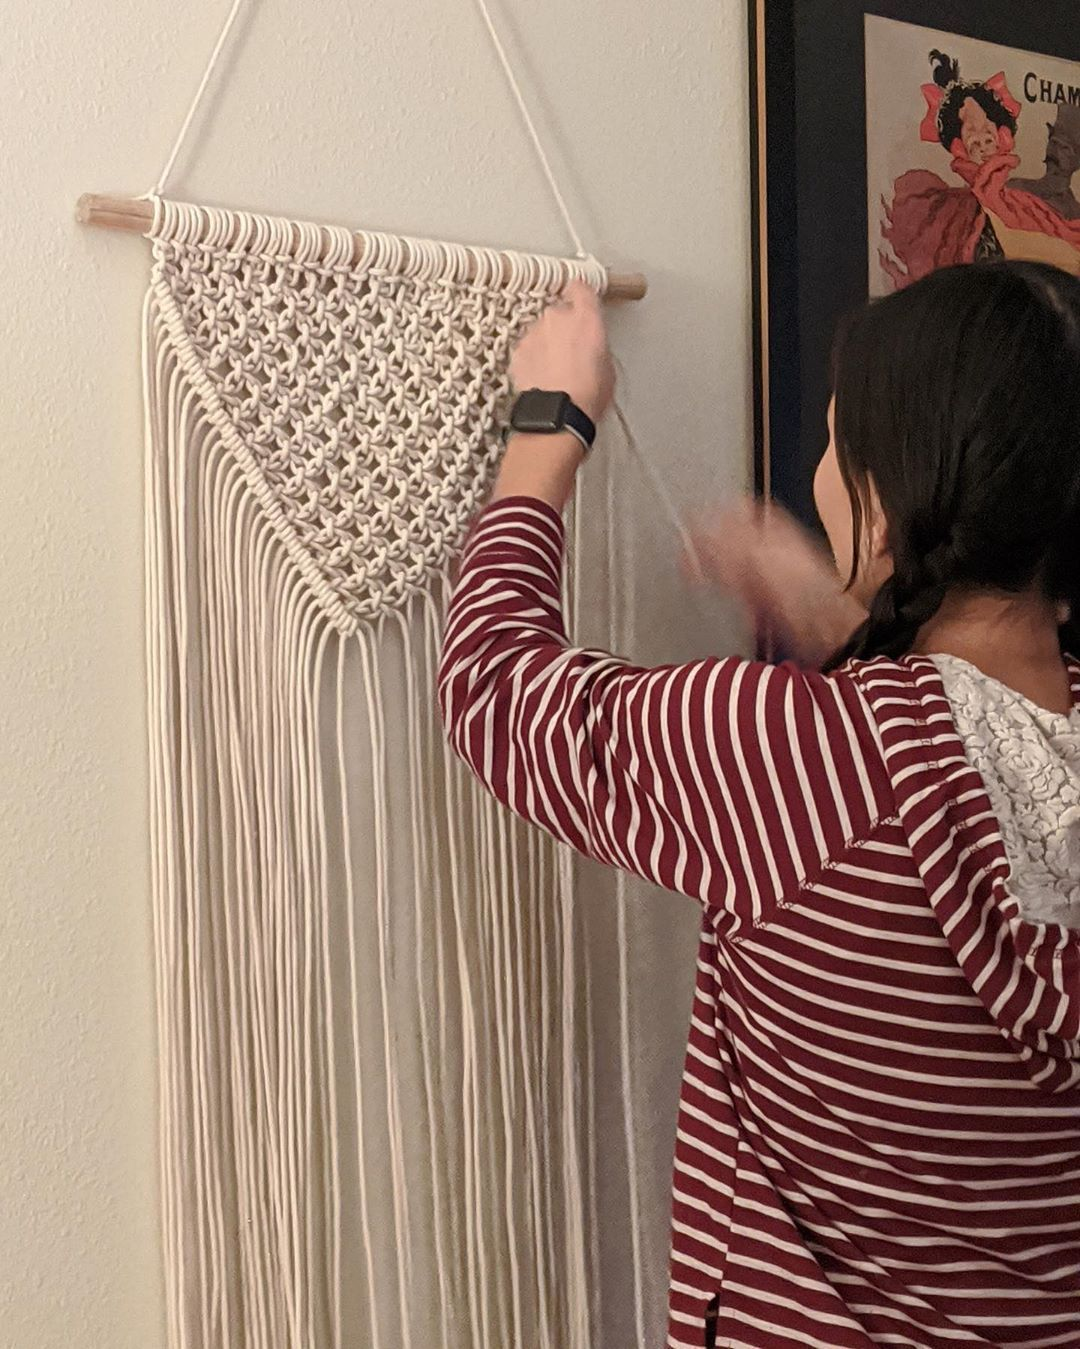 Hello! Welcome to my shop! I hand make macrame and yarn wall decor and plant hangers. See something you like, send me a message :) If it's a ready to ship item you will receive the one in the photo. Don't worry if it already sold, you can order a pre order and will receive it in 1-2 weeks. Local drop off available ! ⚪️⚫️⚪️⚫️⚪️⚫️⚪️⚫️⚪️ #macramê #macrame #macramewallhanging #macramelove #macrameplanthanger #macrameart #macramedecor #macramemoment #yarn #yarnaddict #yarnlove  #yarnstagram #craft #c